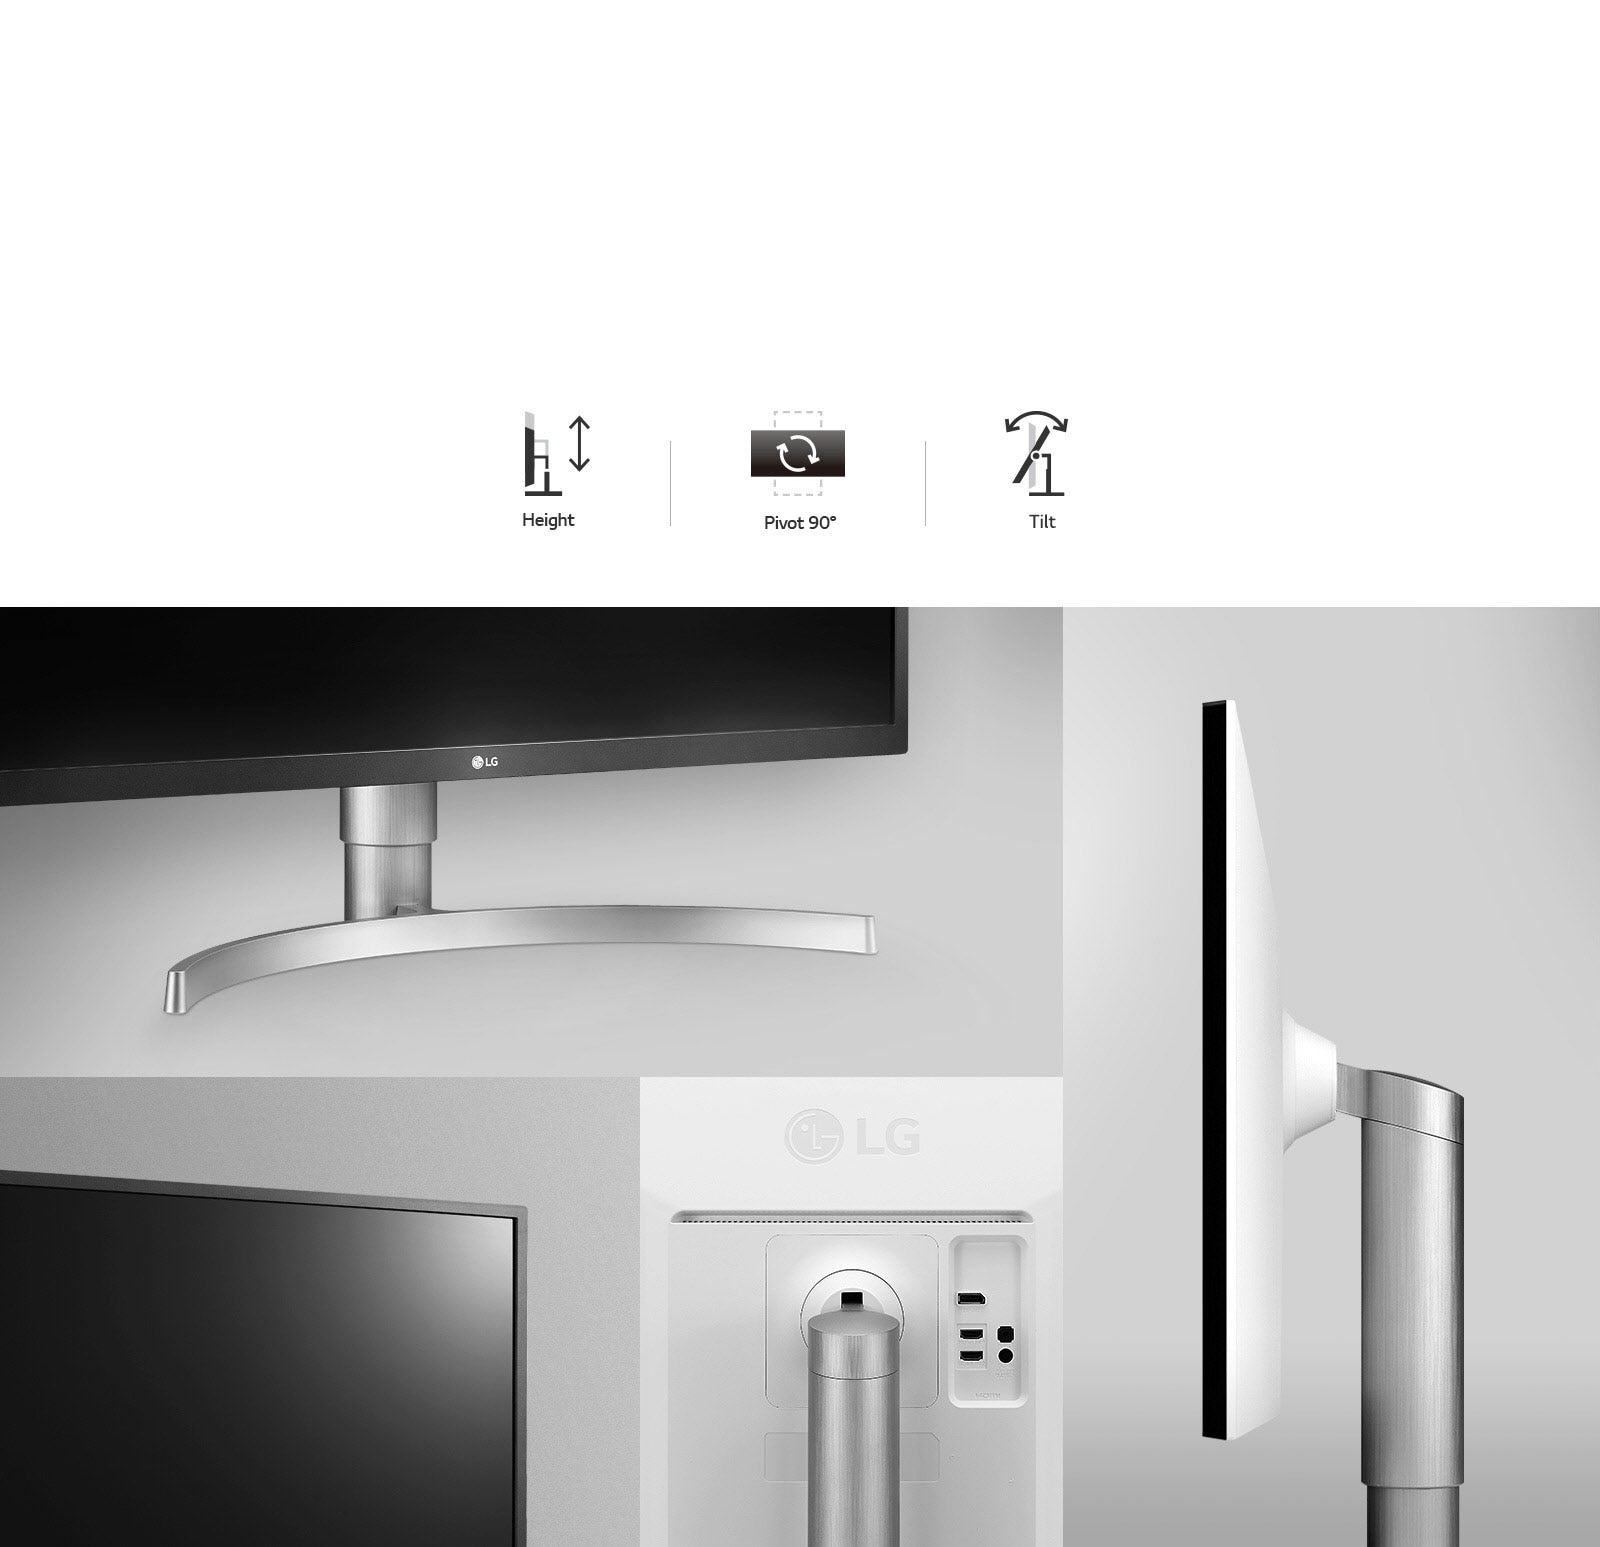 LG monitor images featuring the stand going up and down